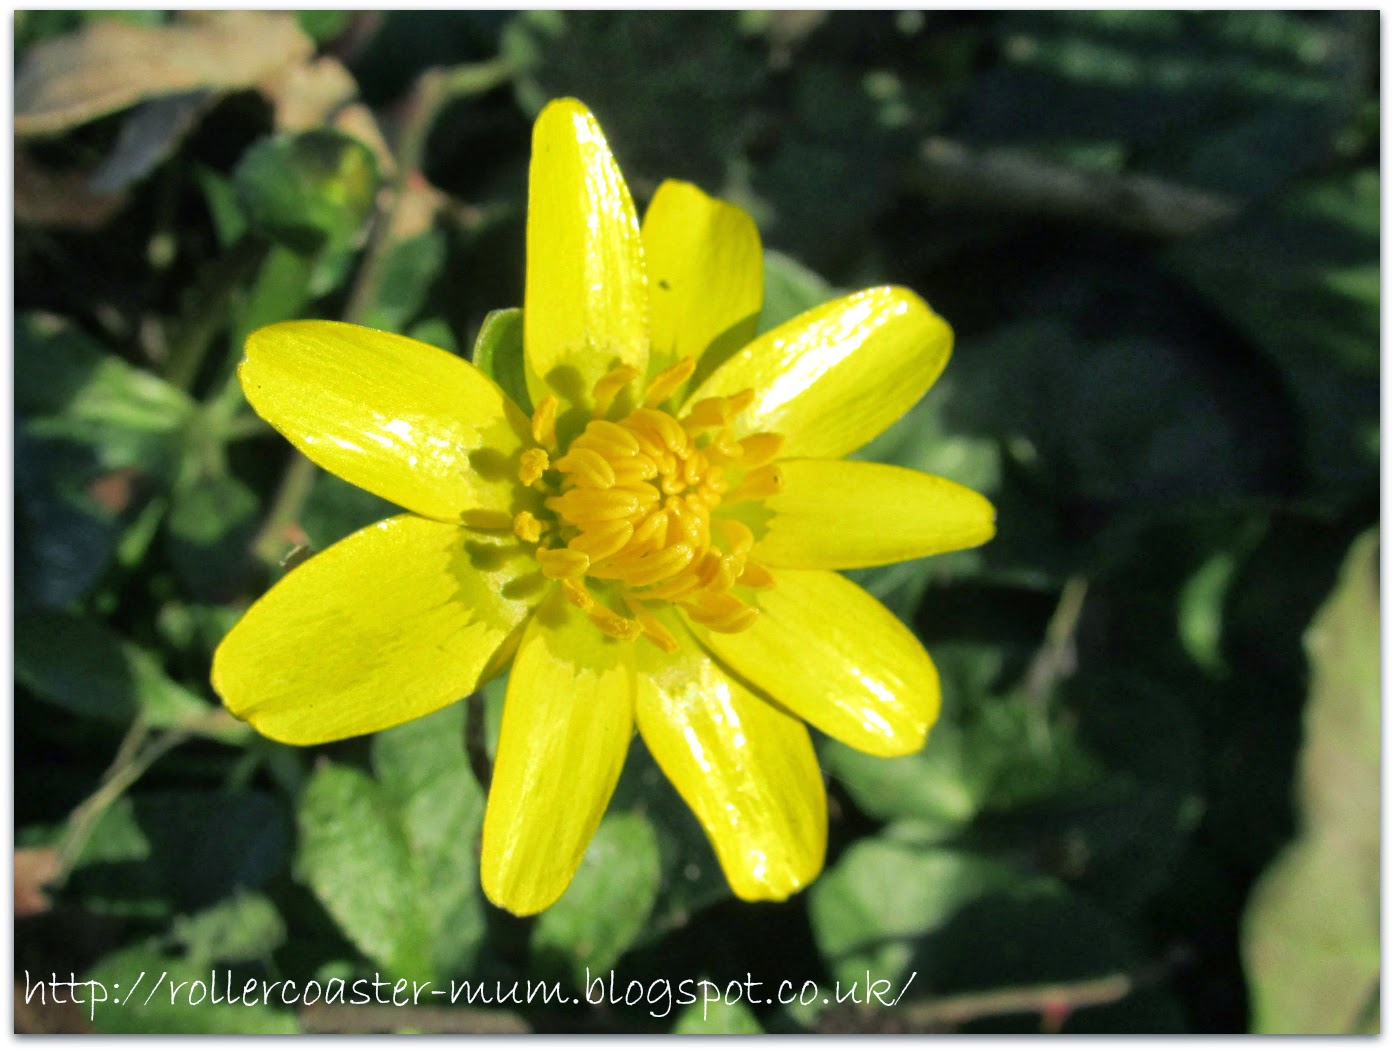 yellow Celandine flower in the sunshine